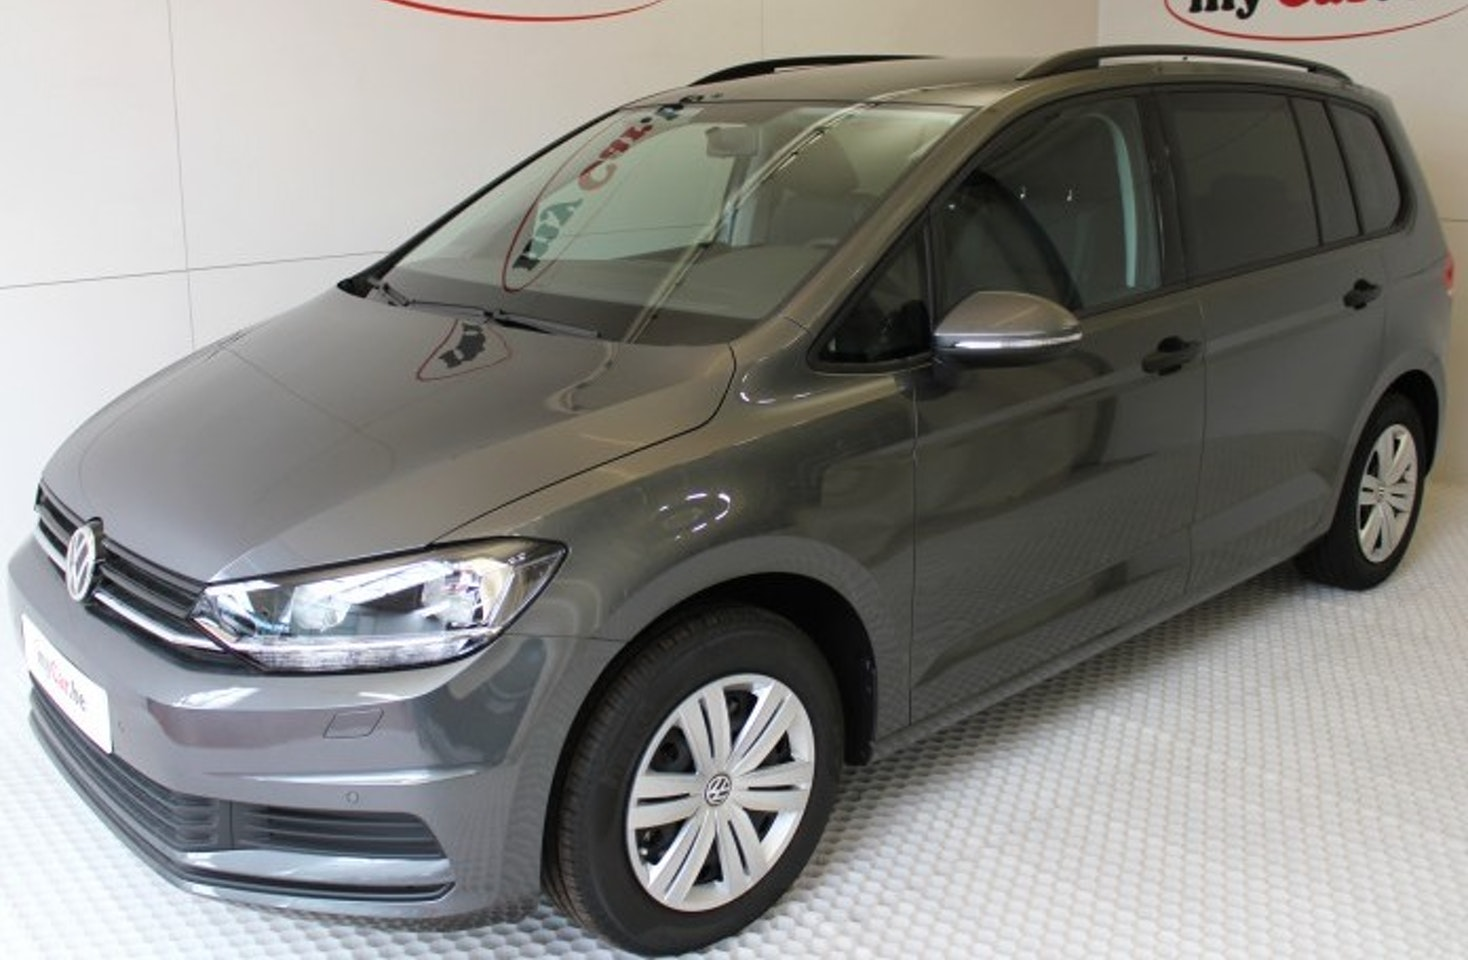 volkswagen touran trendline 7pl le sp cialiste dans presque nouvelles voitures. Black Bedroom Furniture Sets. Home Design Ideas